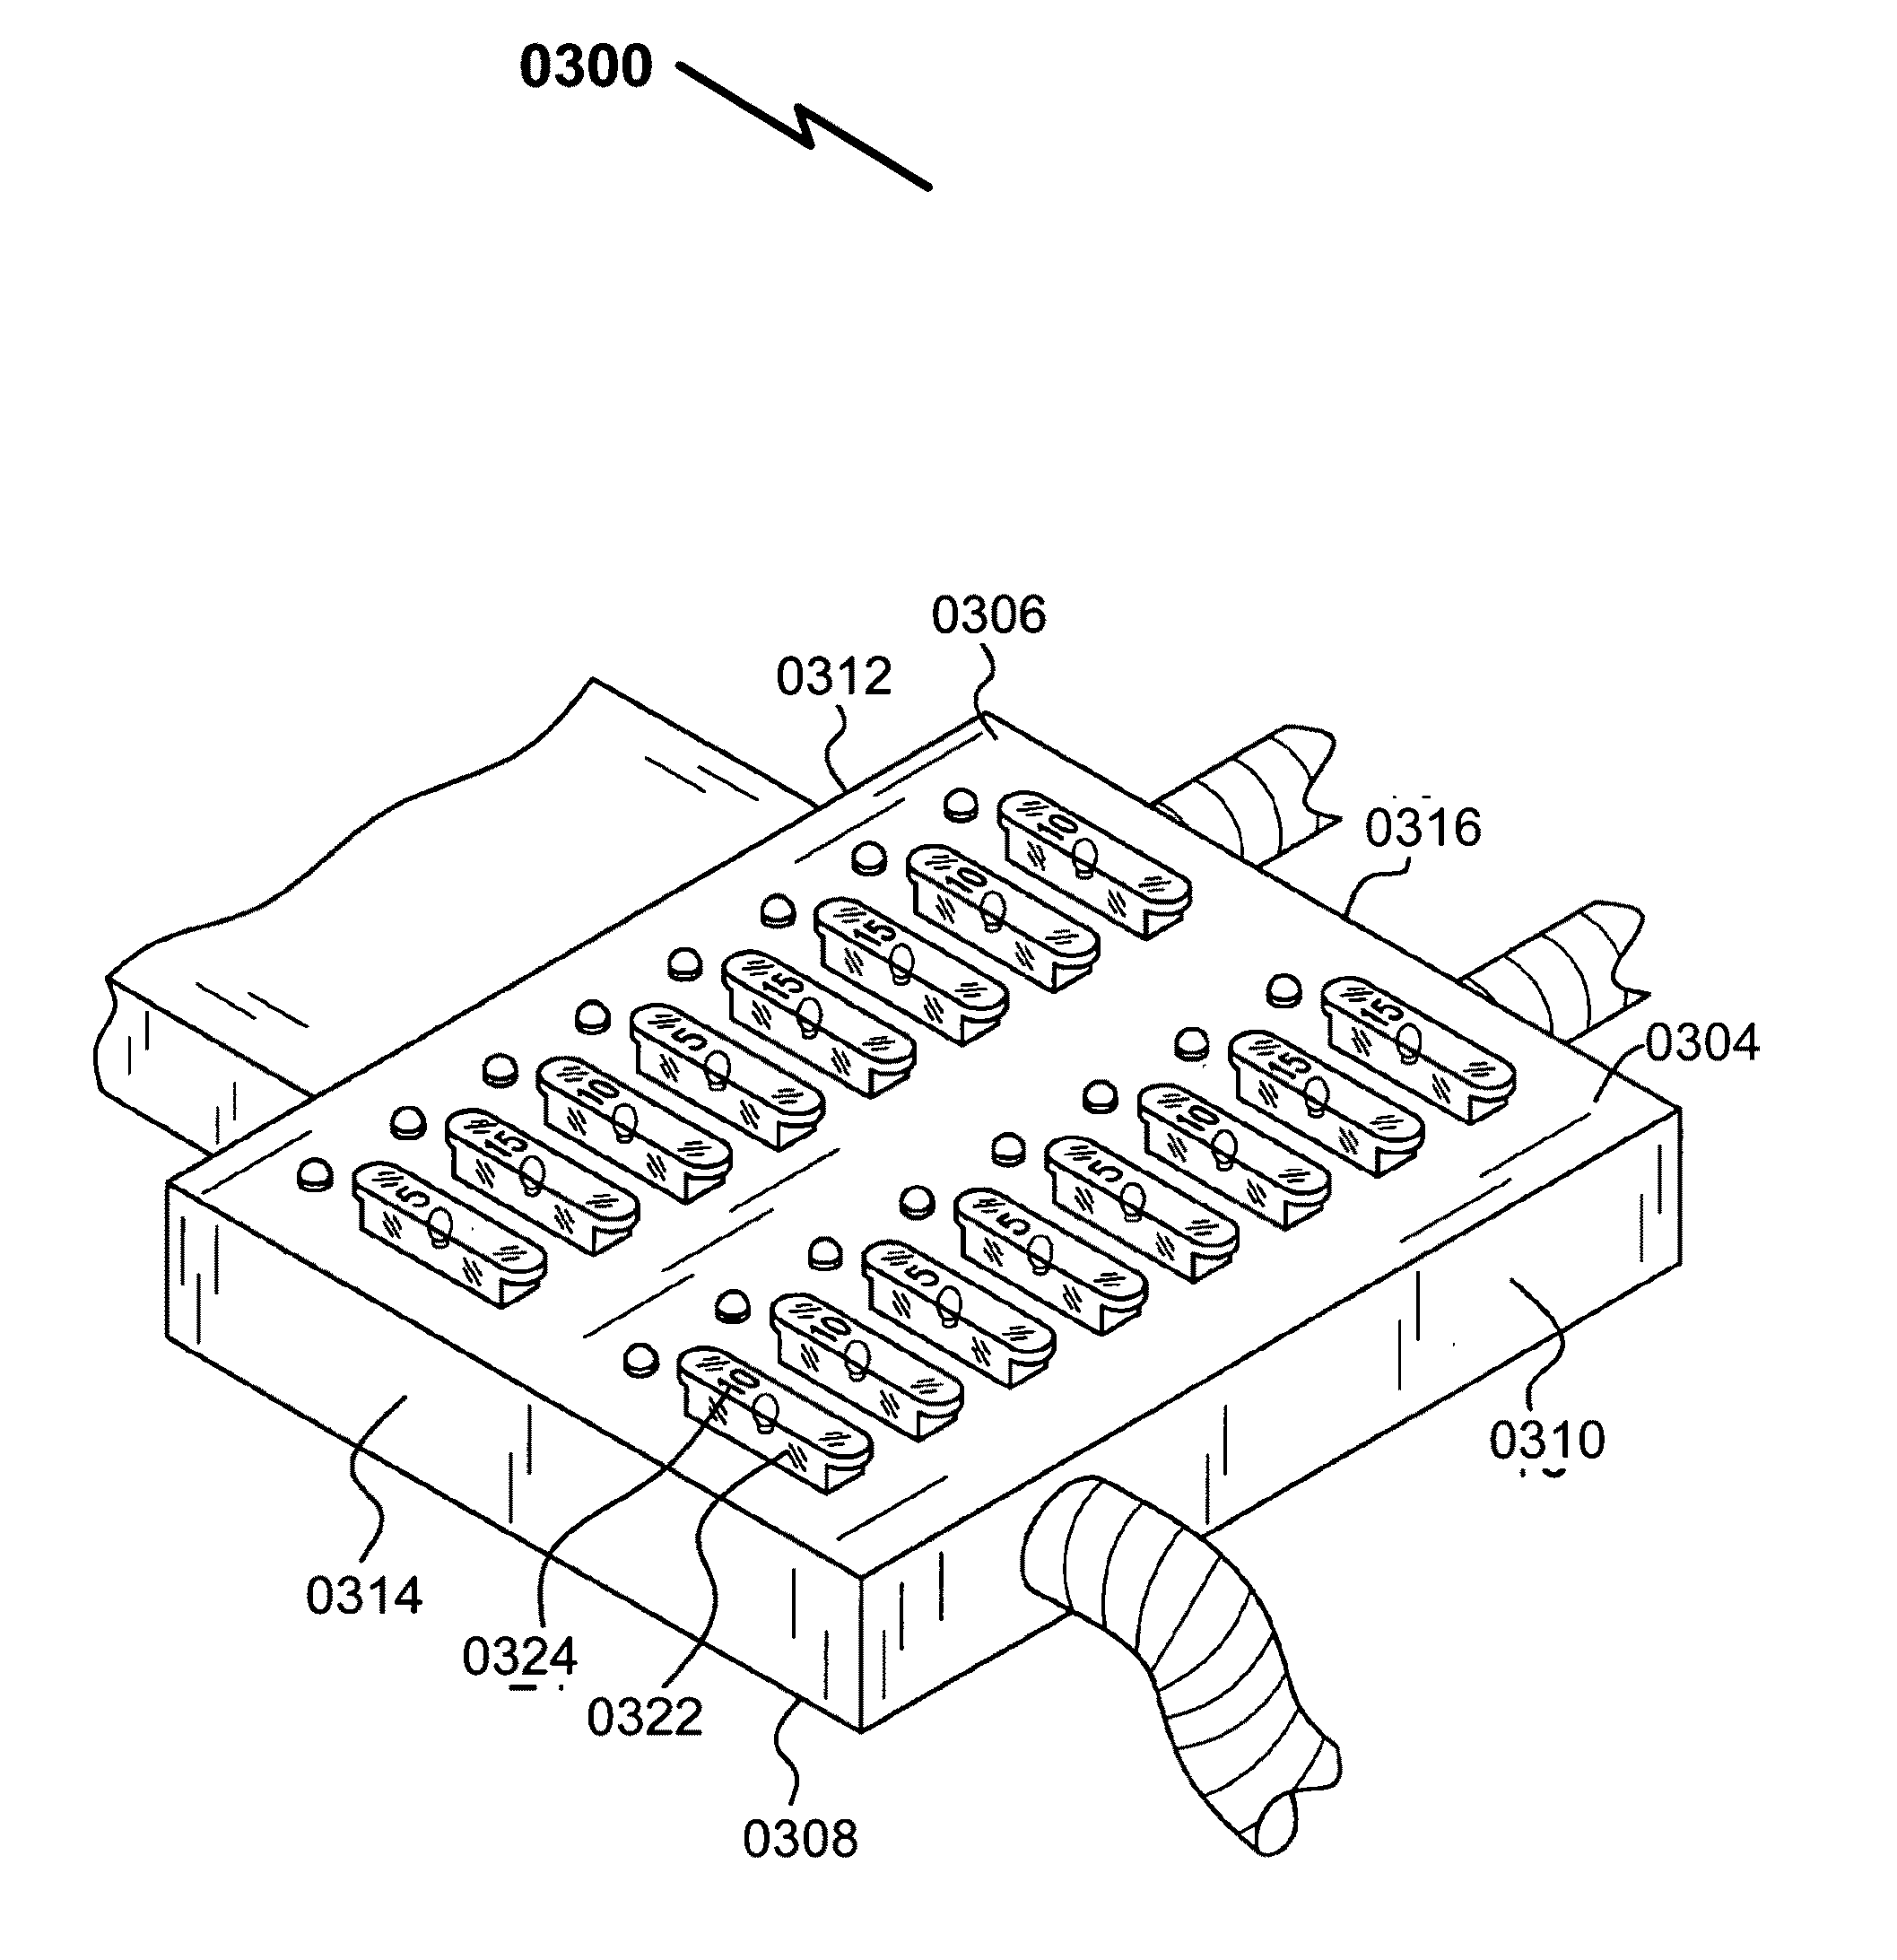 patent us20110175699 fuse box system and method google patents patent drawing